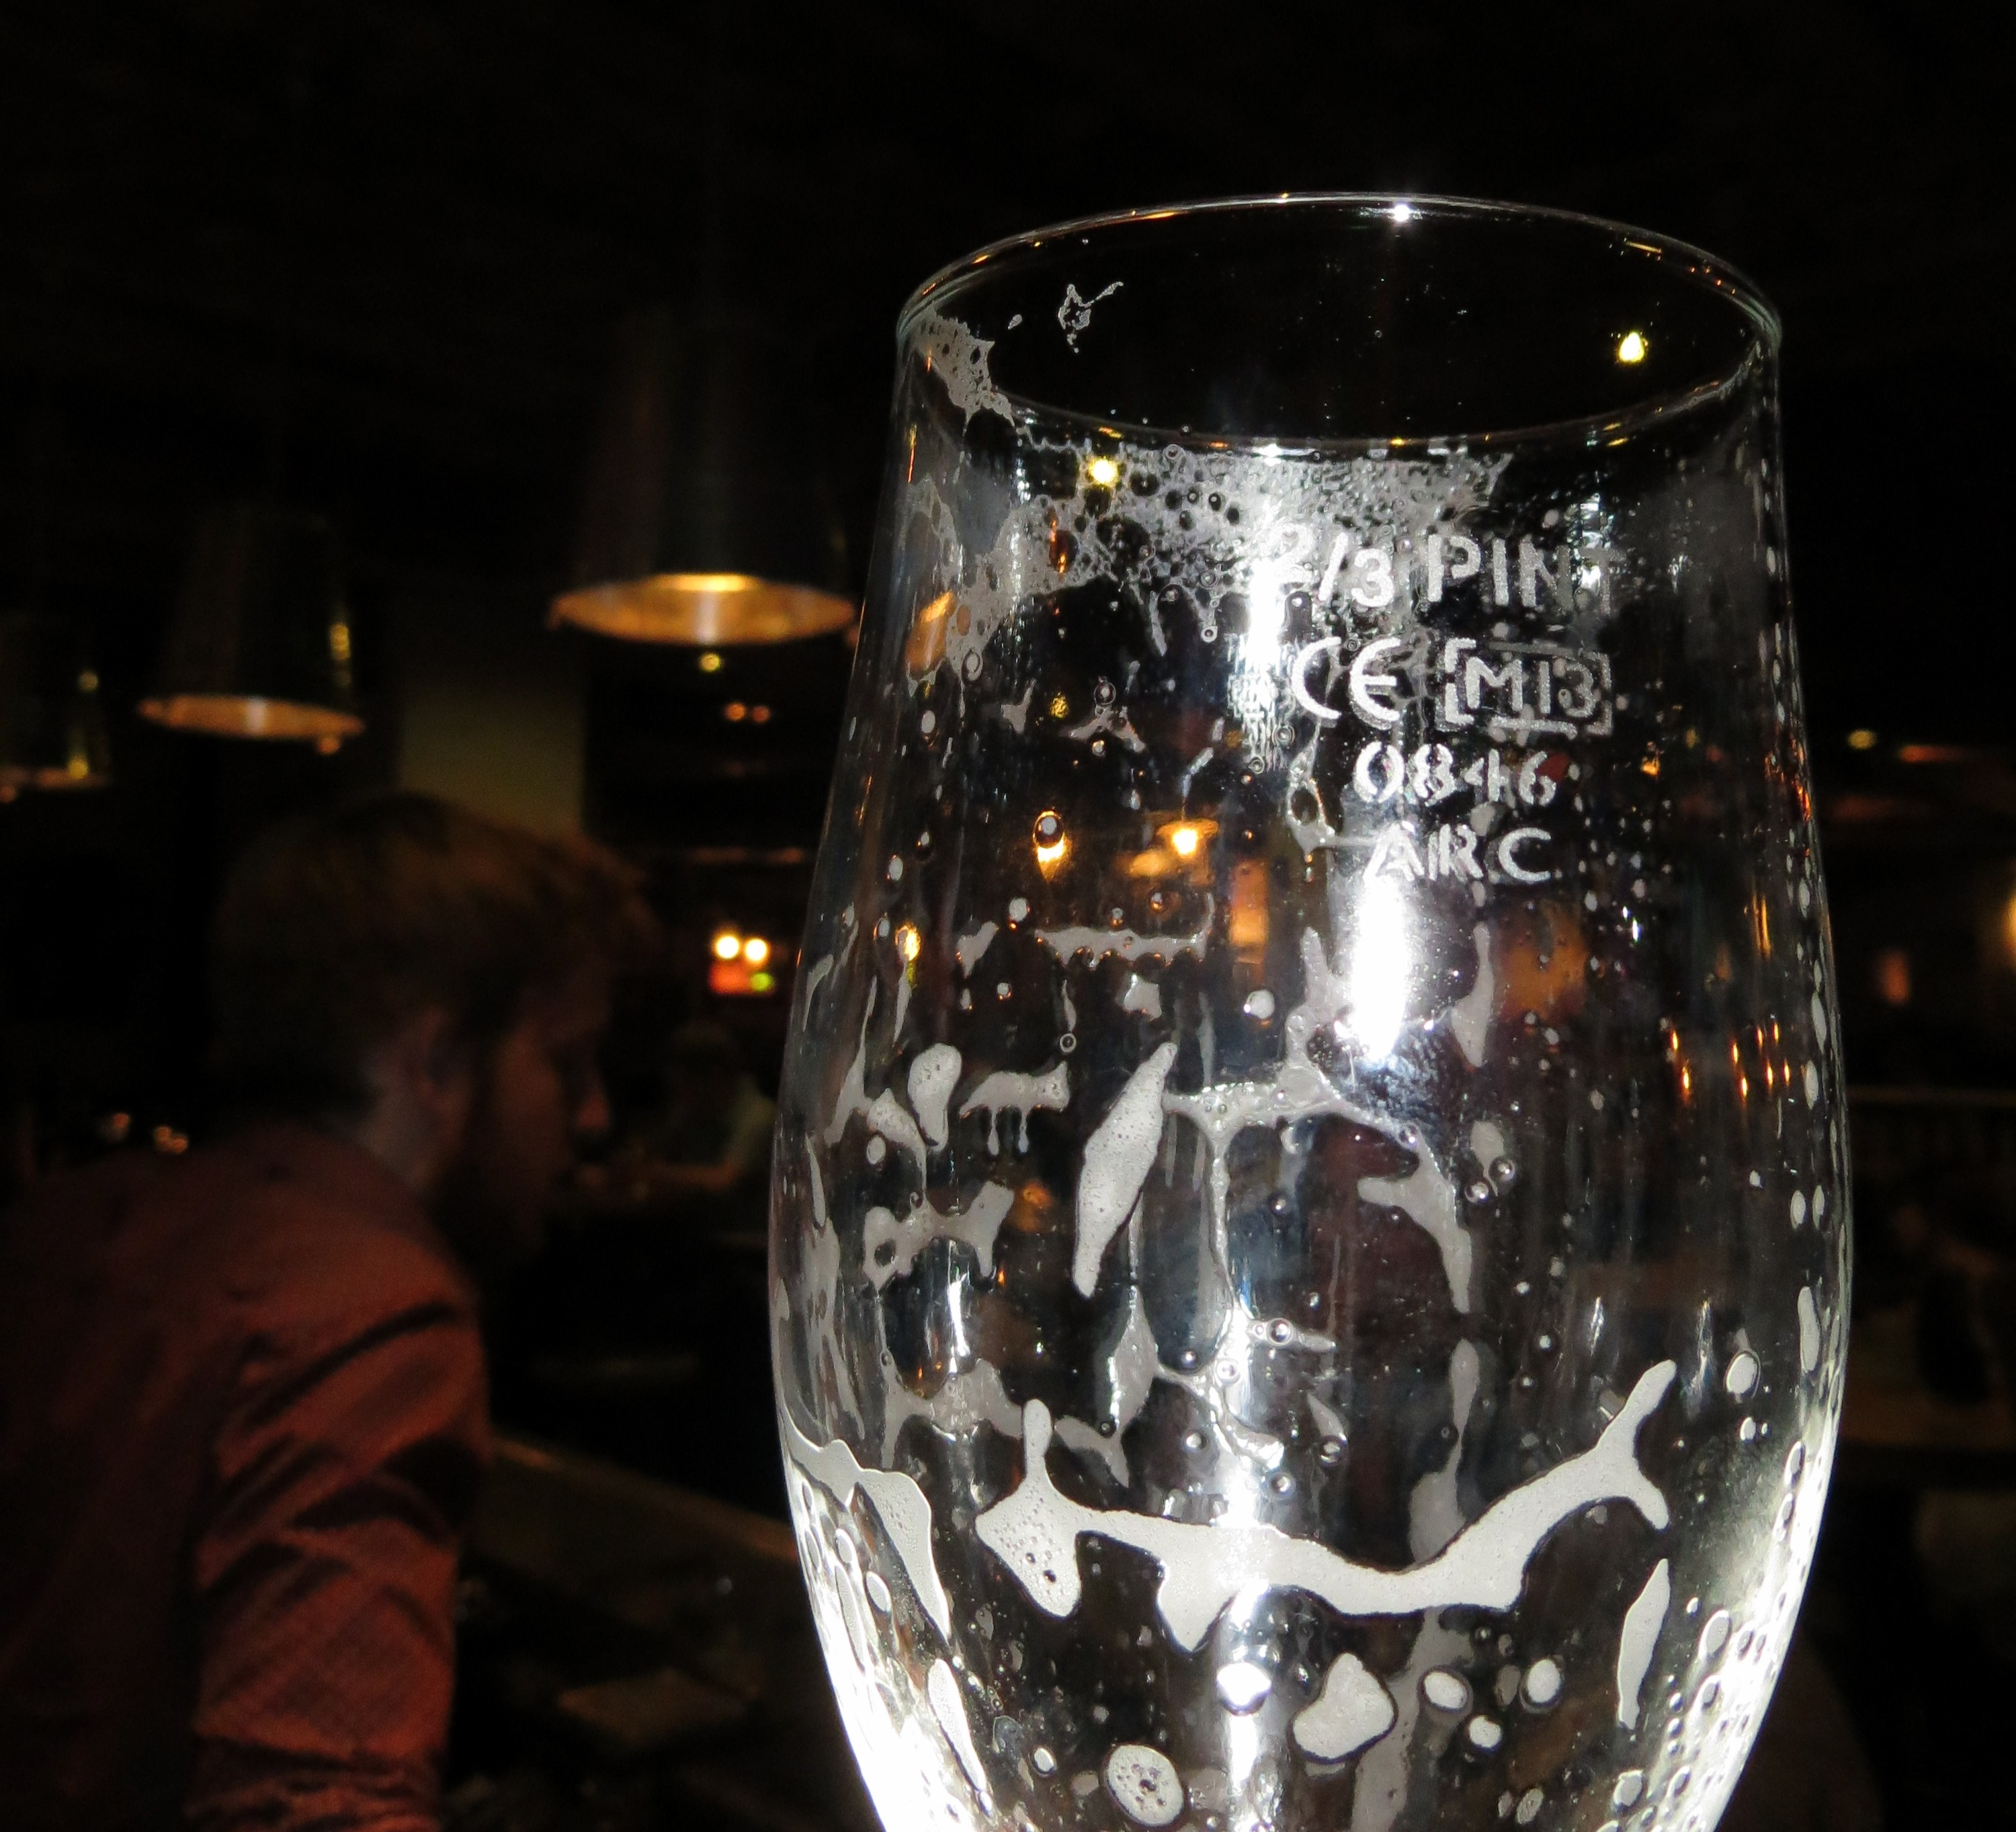 Cask report Archives - Pete Brown